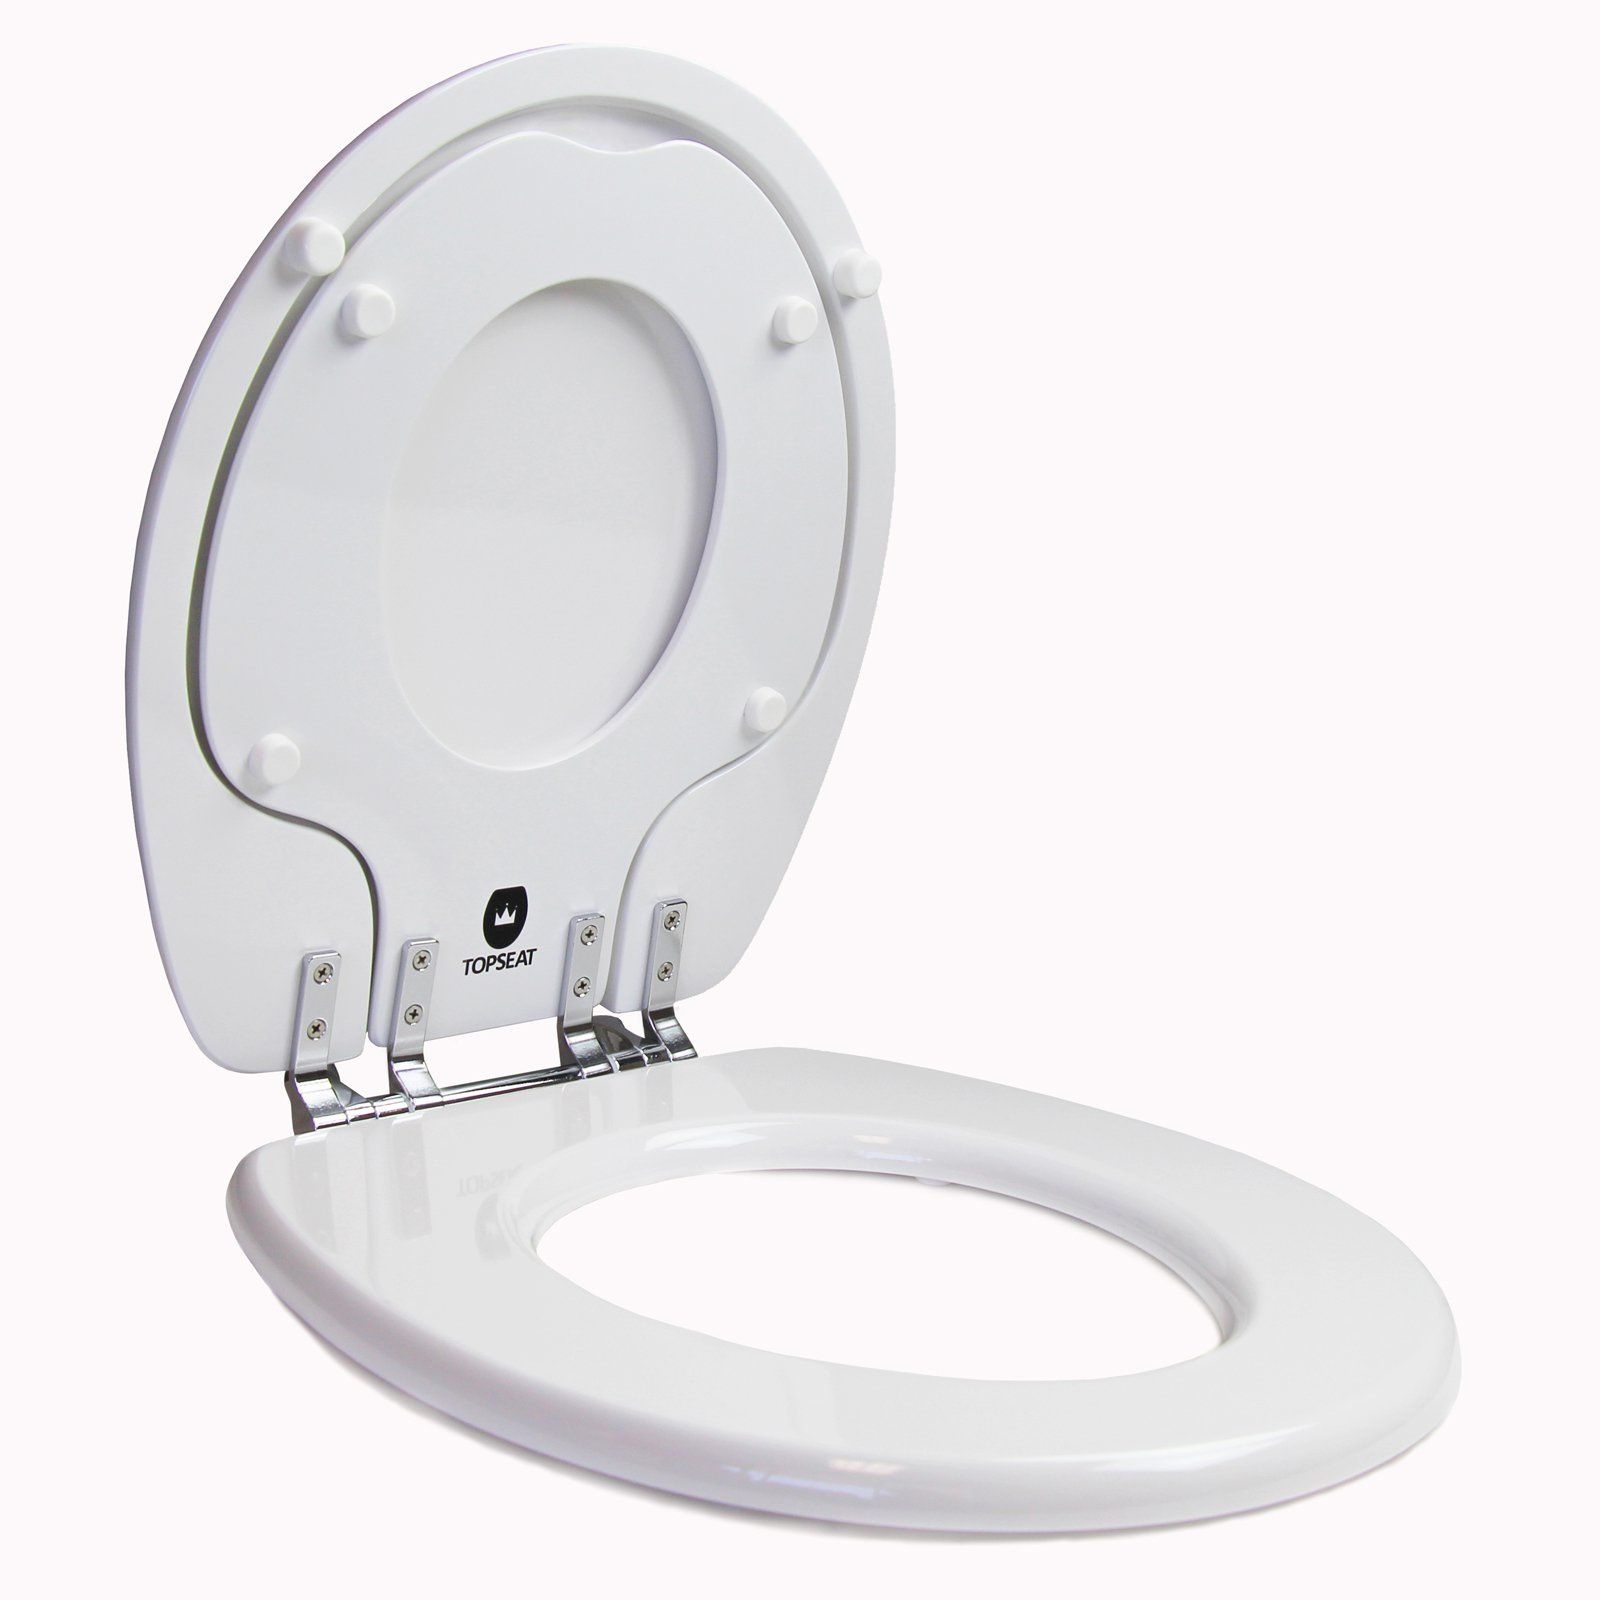 Topseat 6tstr9999cp Tinyhiney Potty Round Toilet Seat Potty Seat